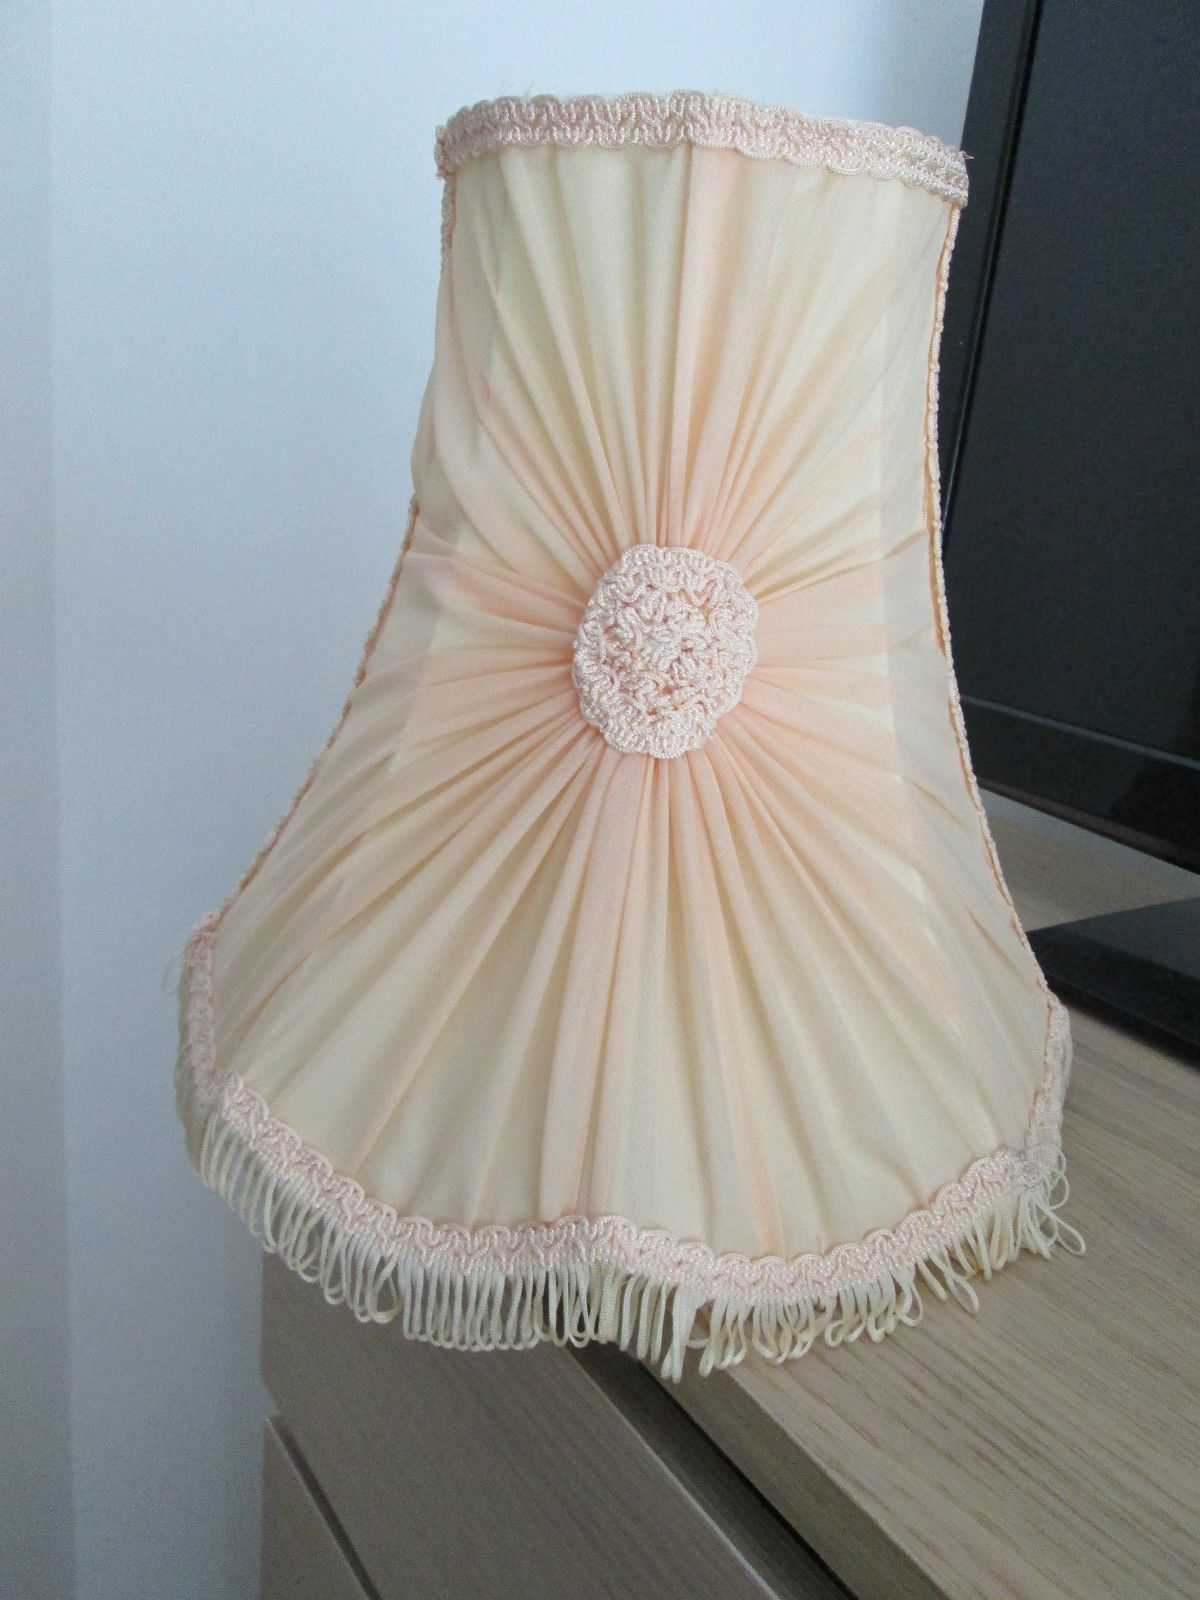 Vintage French Chiffon Pleated Lampshade Pale Yellow Pink Hue Shabby Chic In Home Furniture Diy Lighting Lampshades Lightshades Ebay